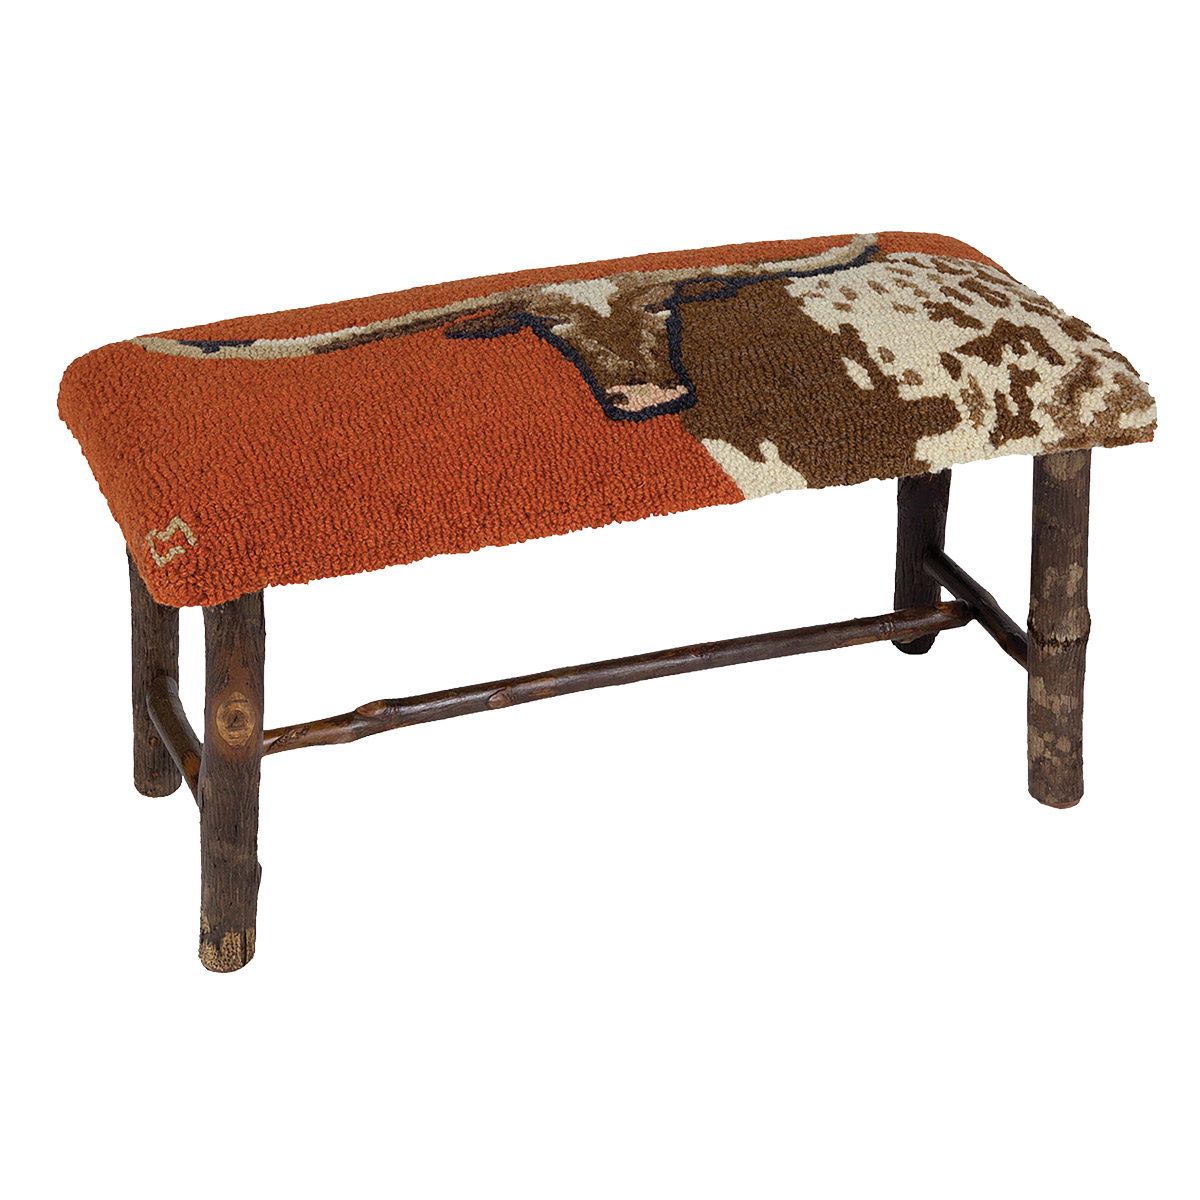 Longhorn Hickory Bench